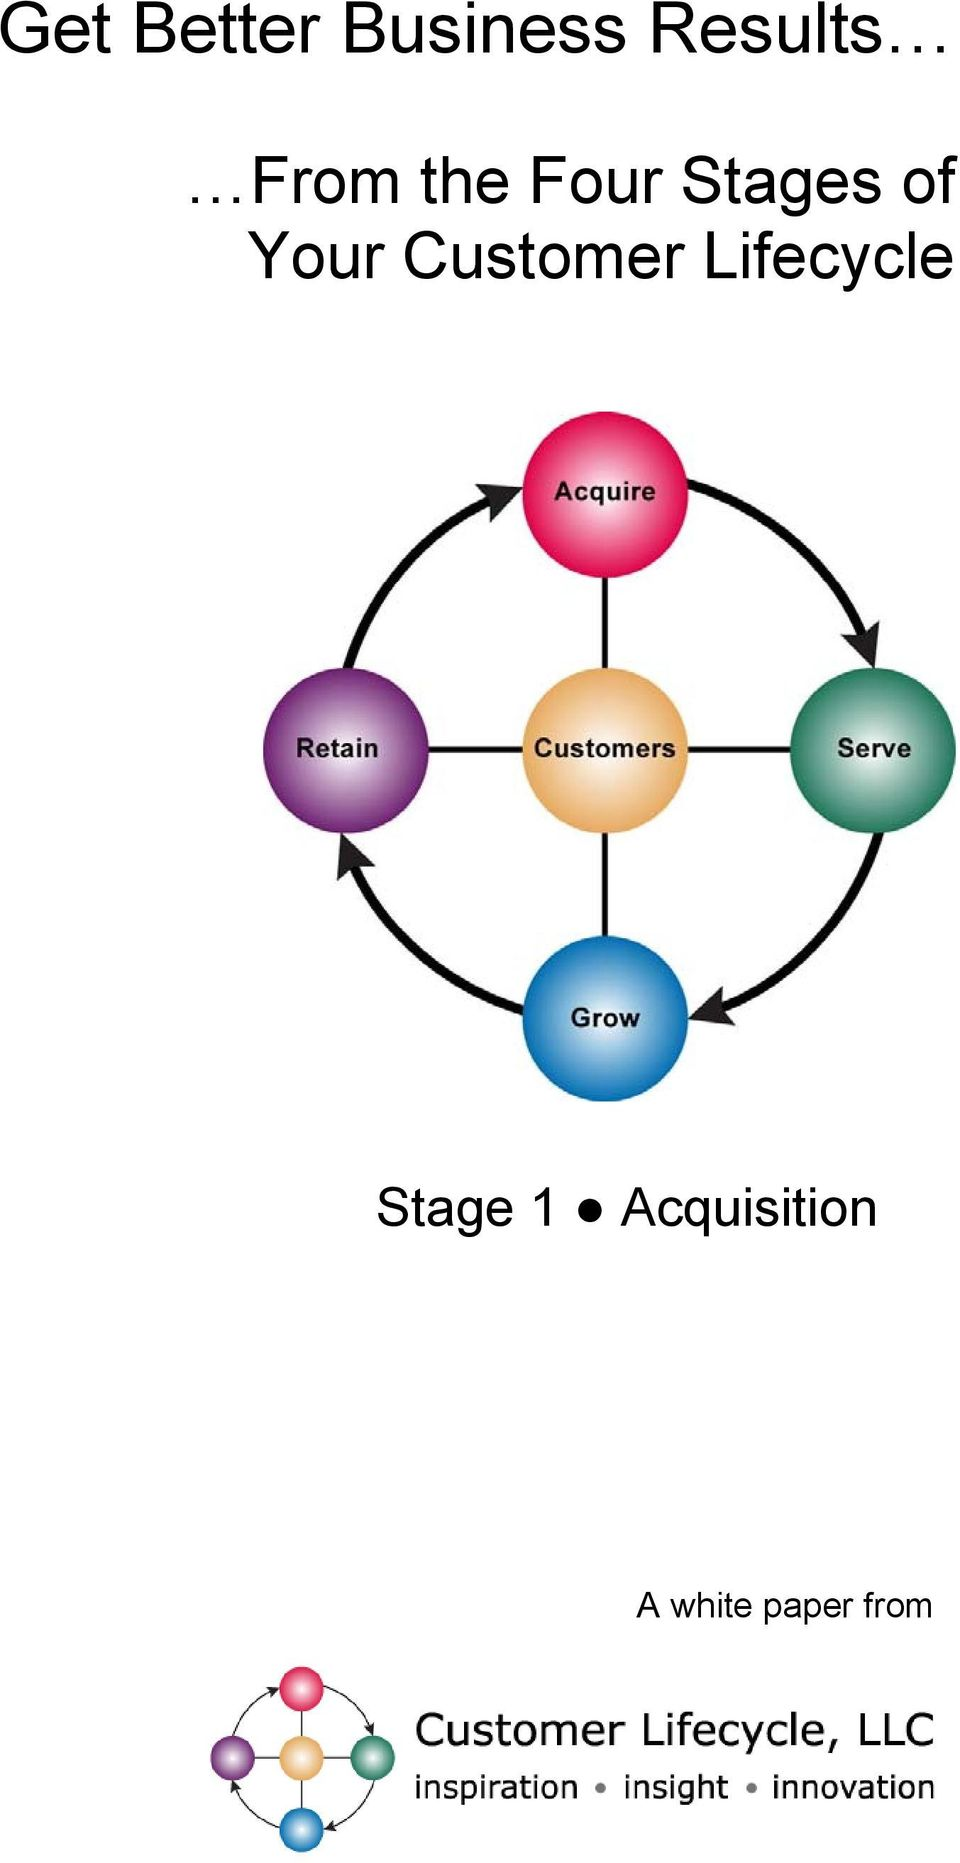 Customer Lifecycle Stage 1